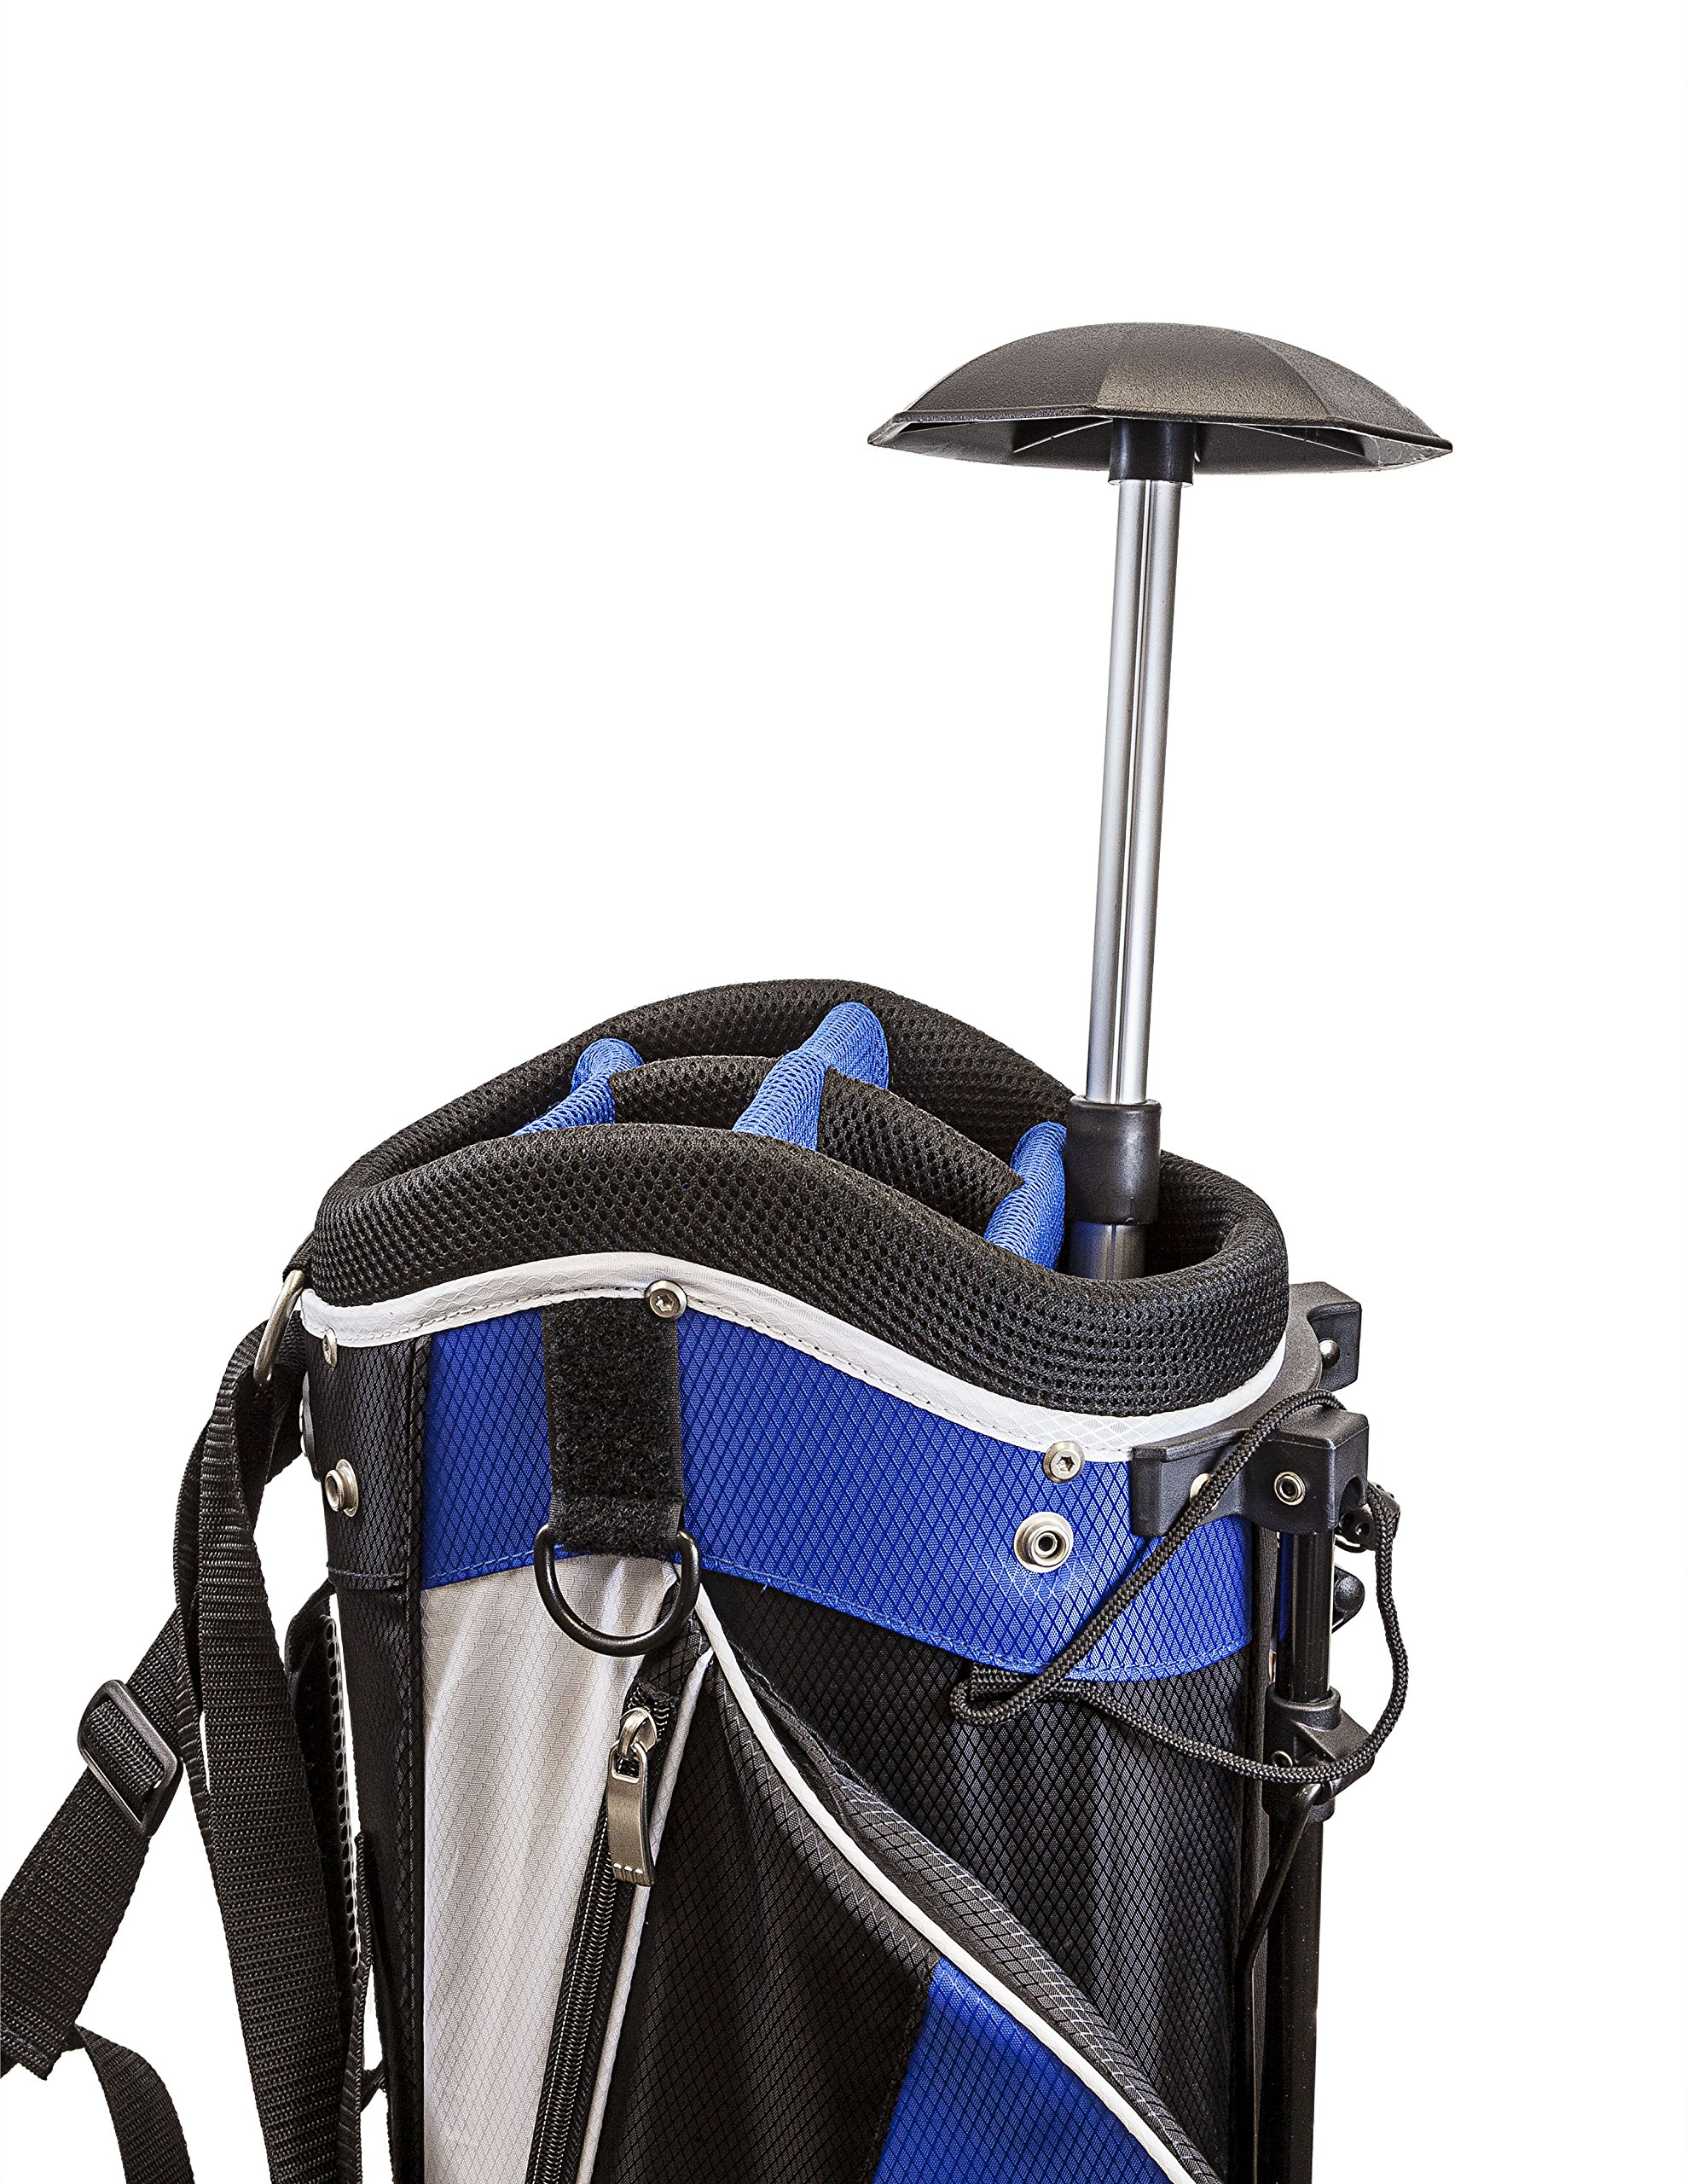 JEF WORLD OF GOLF The Protector Golf Club Travel Support Protection by JEF WORLD OF GOLF (Image #2)